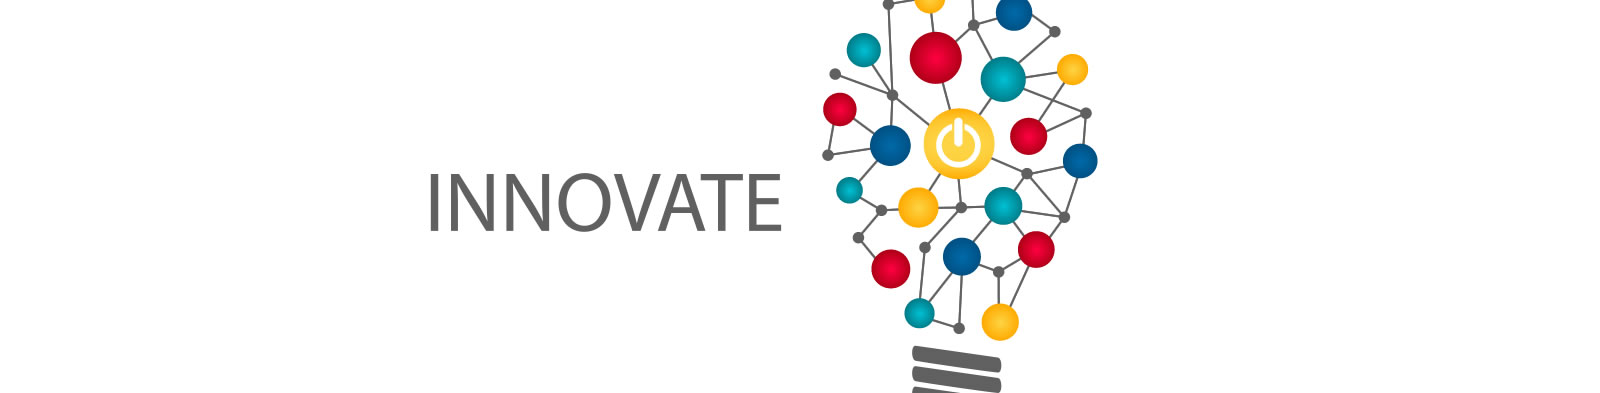 A graphic depicting ideas and innovation